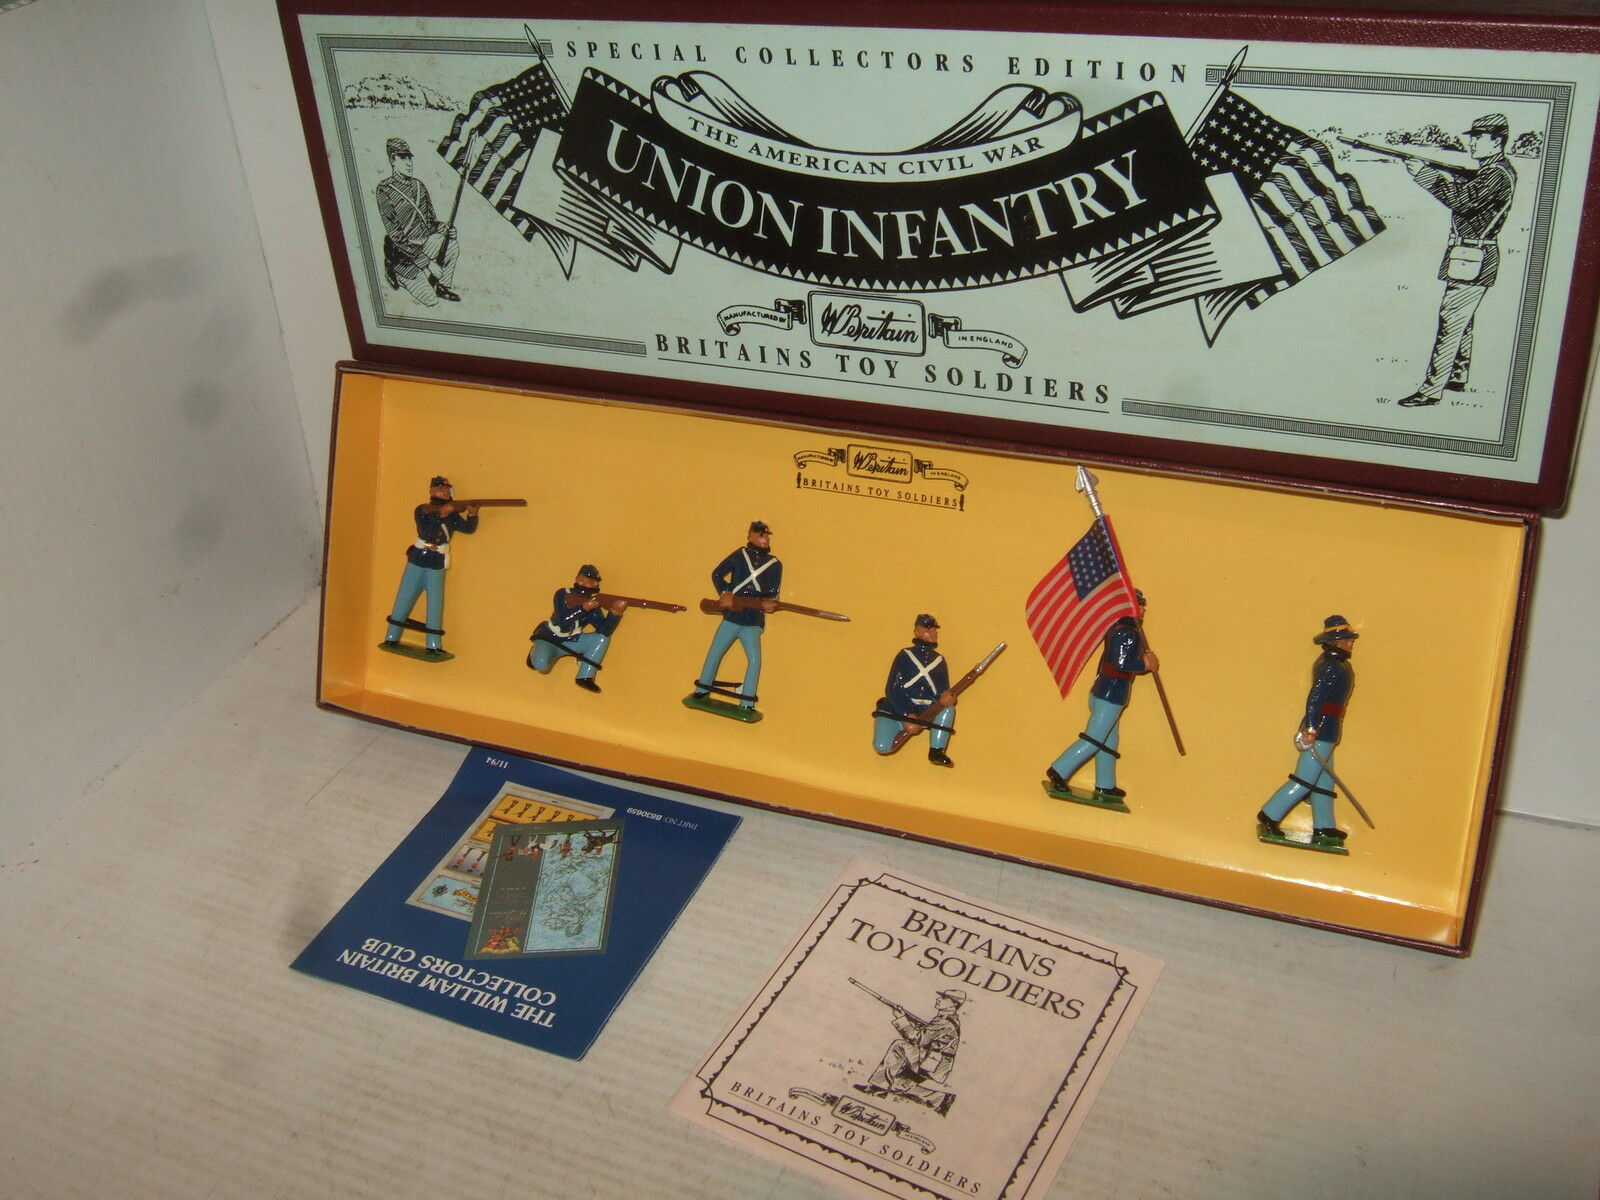 Rare Britains Special Collector Box Set 8852 American Civil War Union Infantry